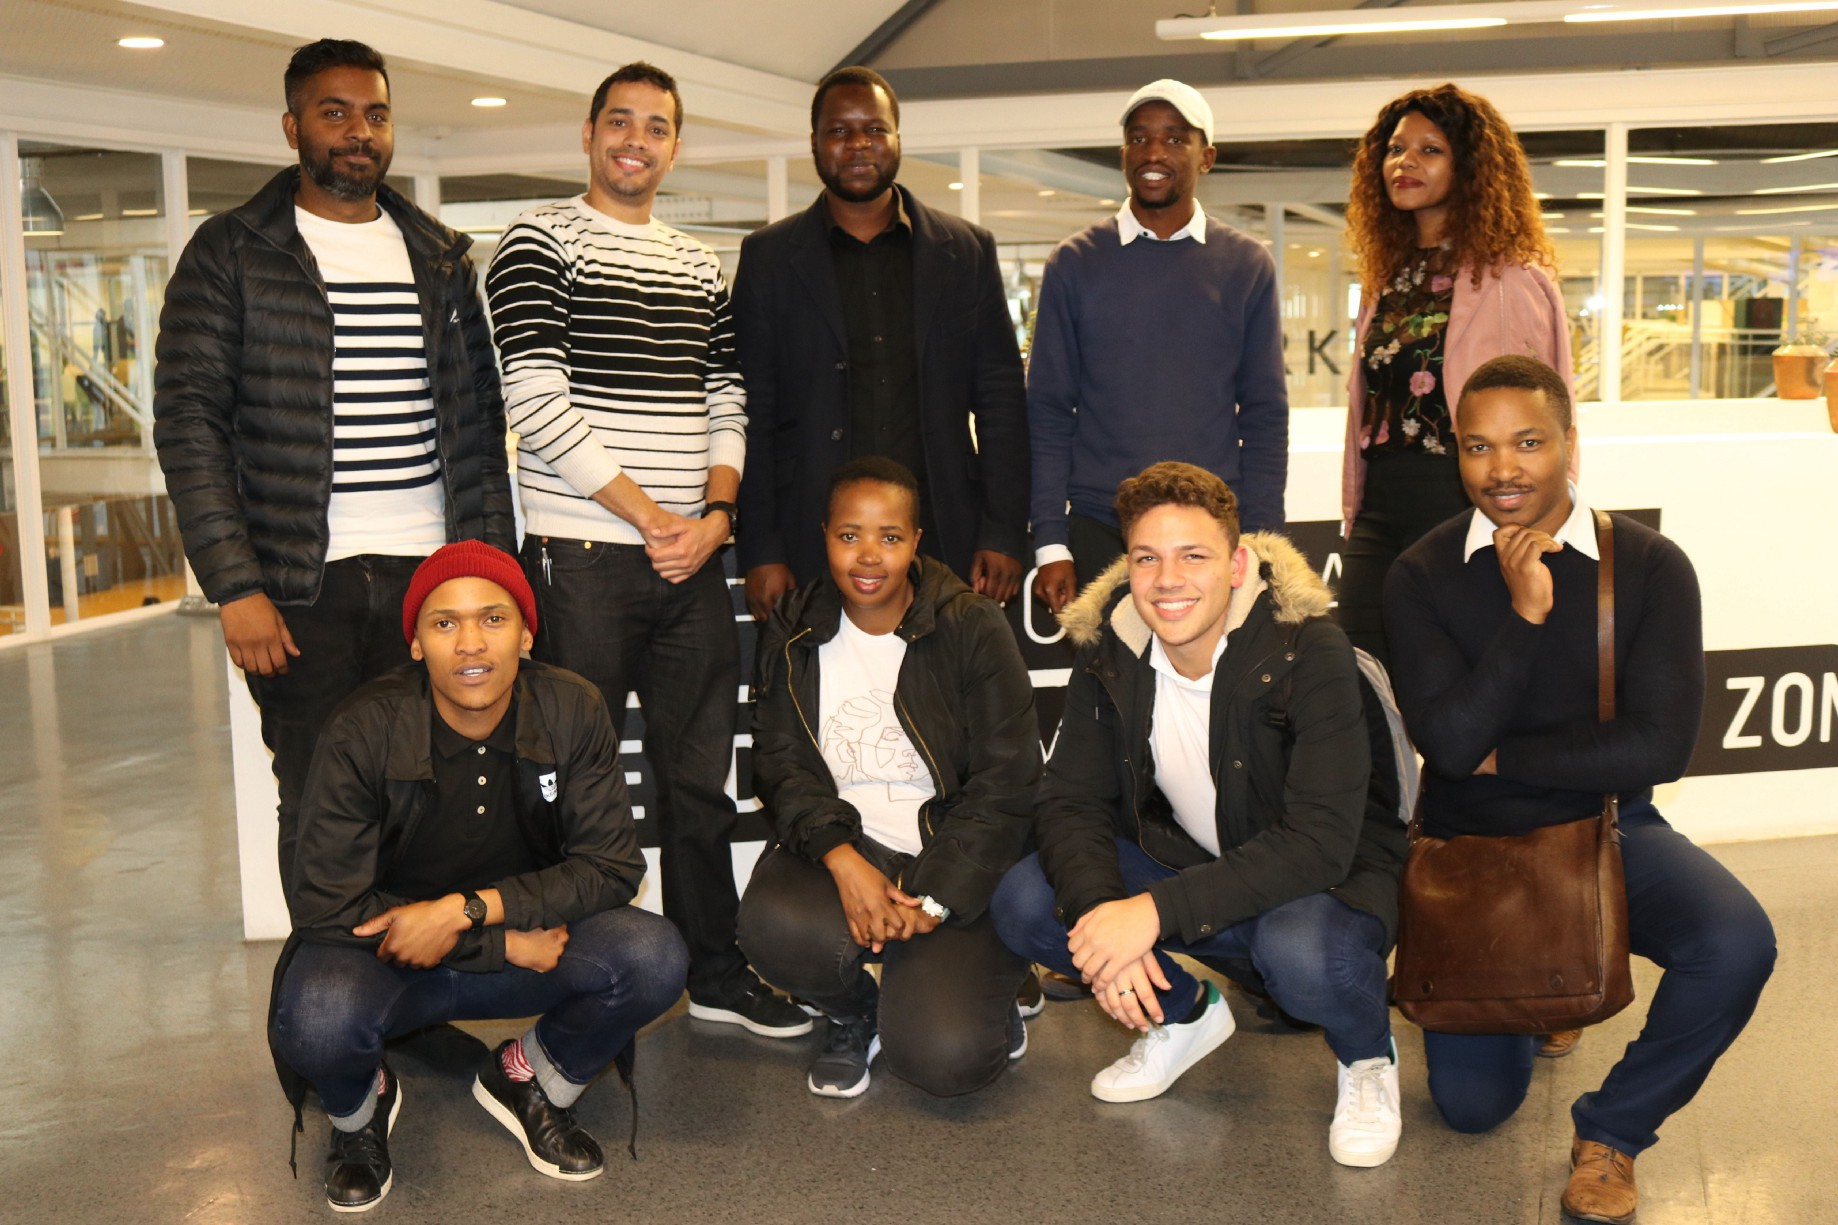 UCT-based Accelerator selects 10 startups for its Accelerator Program